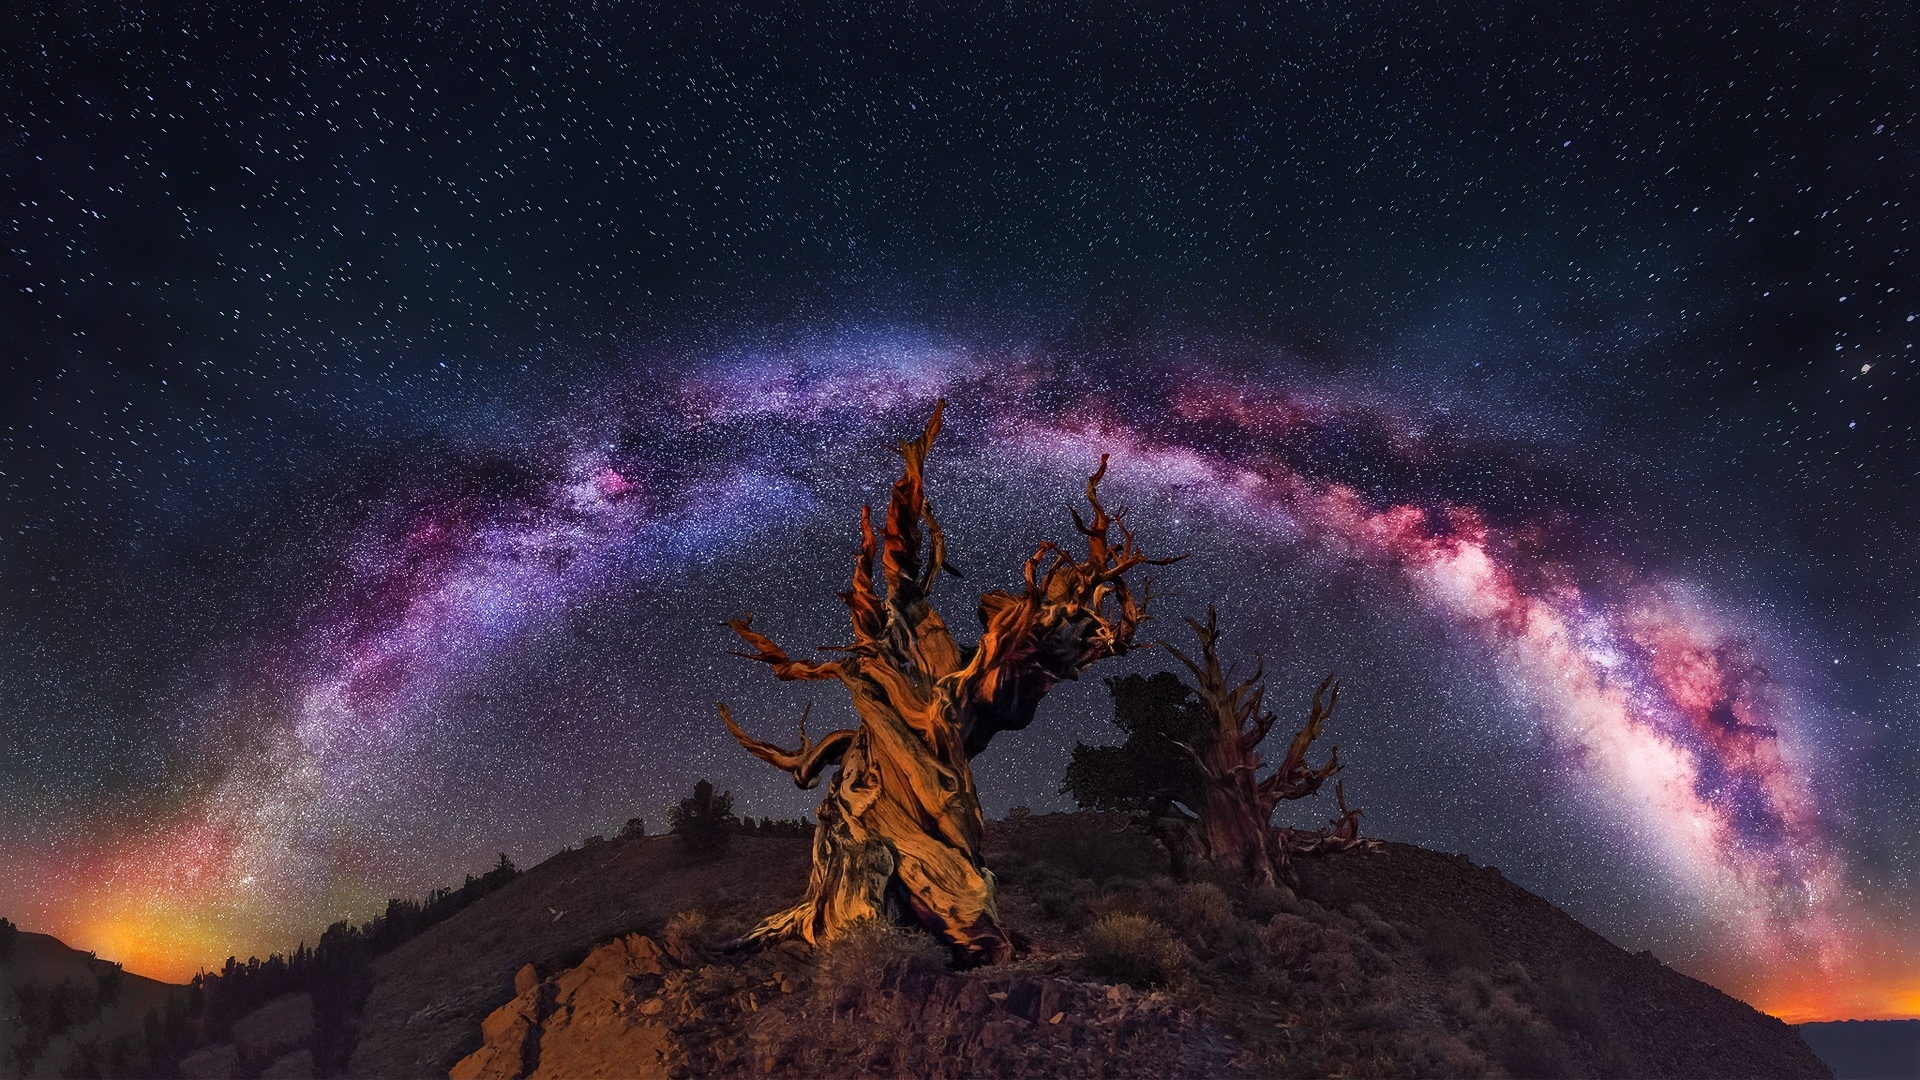 Tree And Space wallpaper for pc